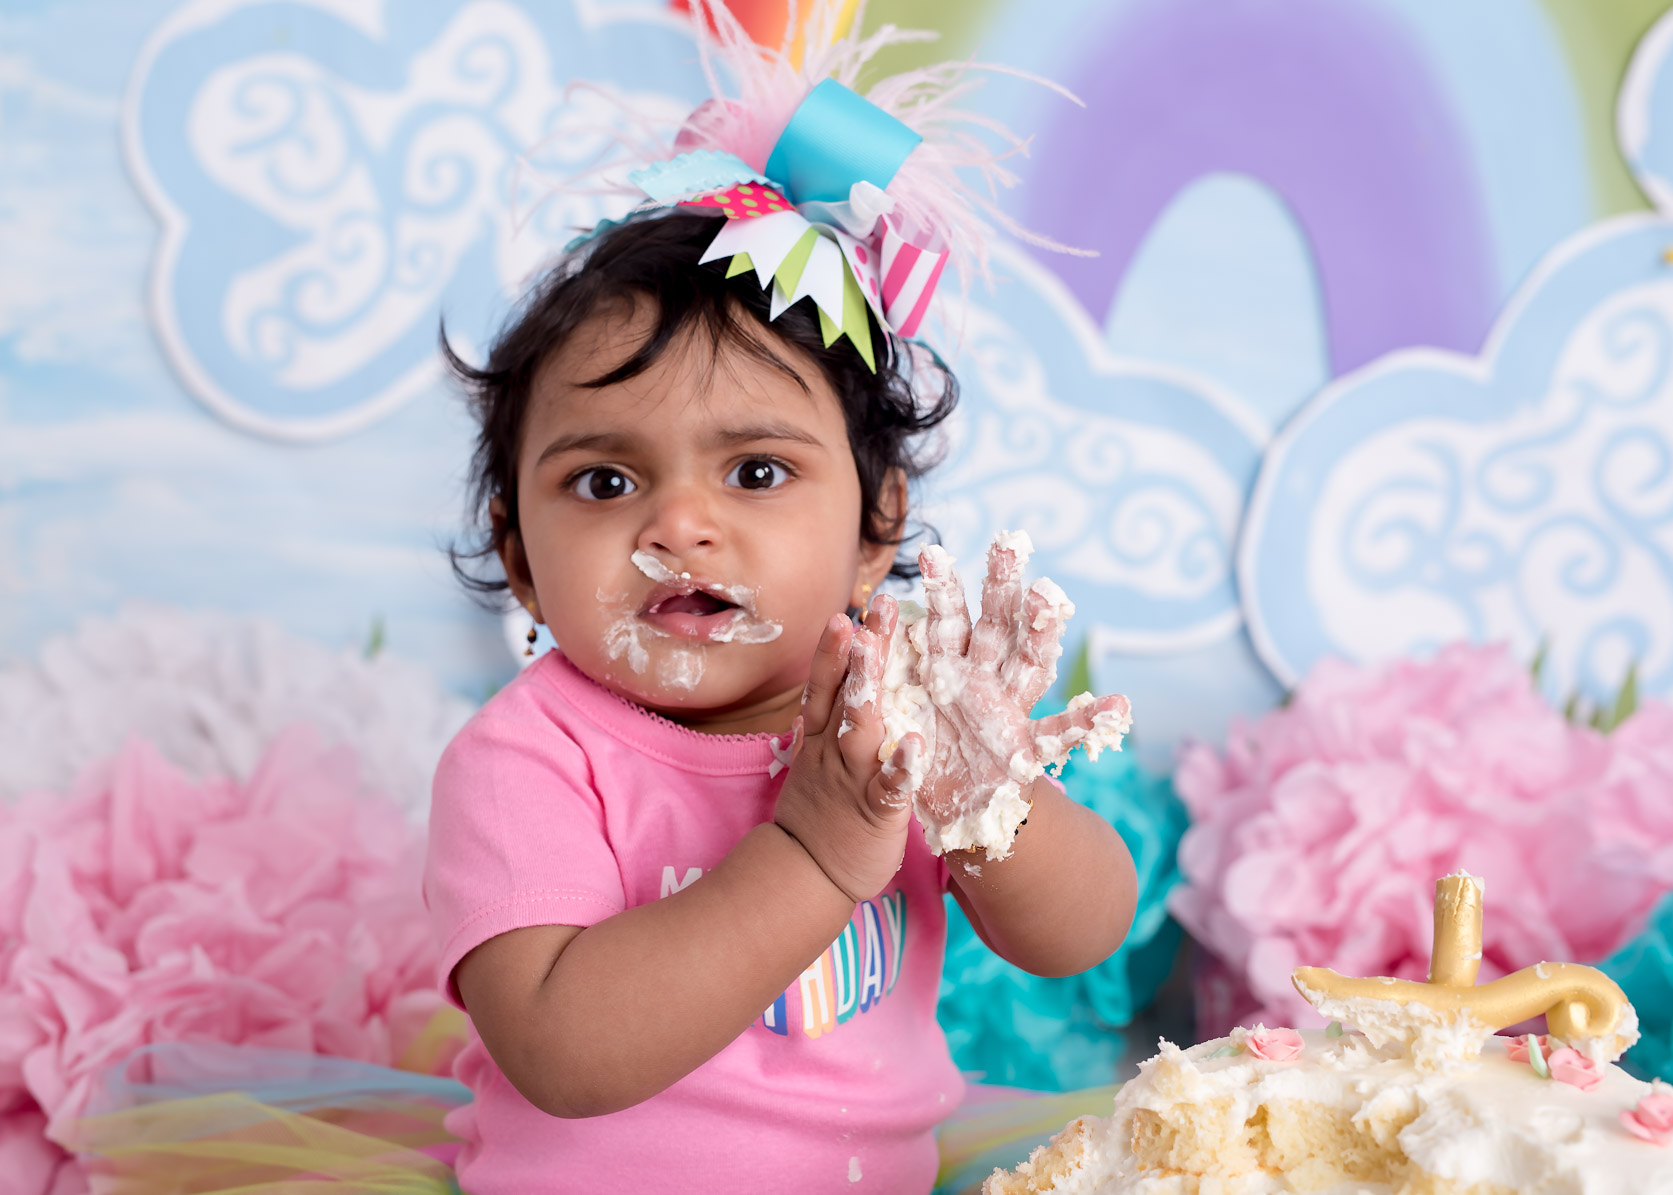 Cake Smash Anjeli DSC_9398-Edit.jpg